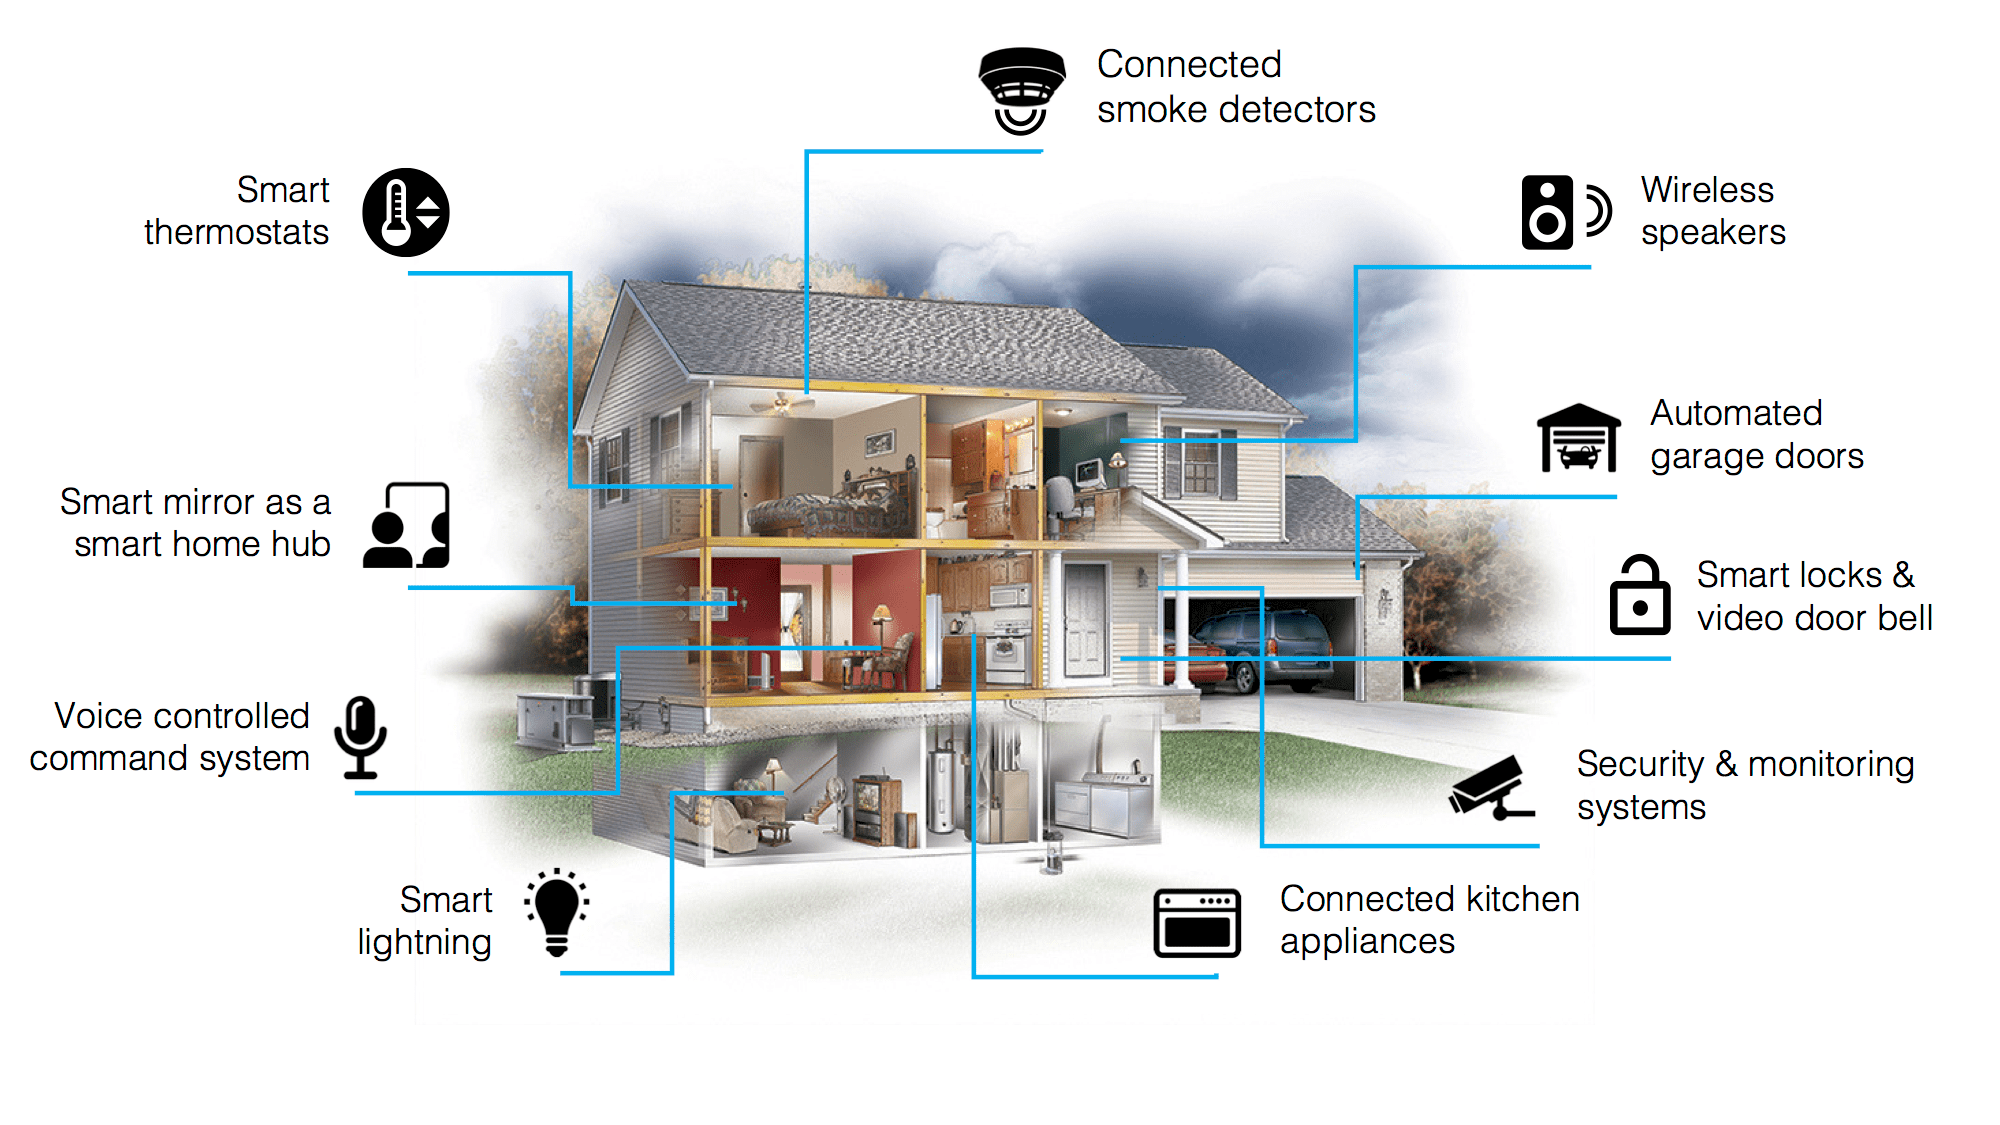 Smart home infographic DIRROR